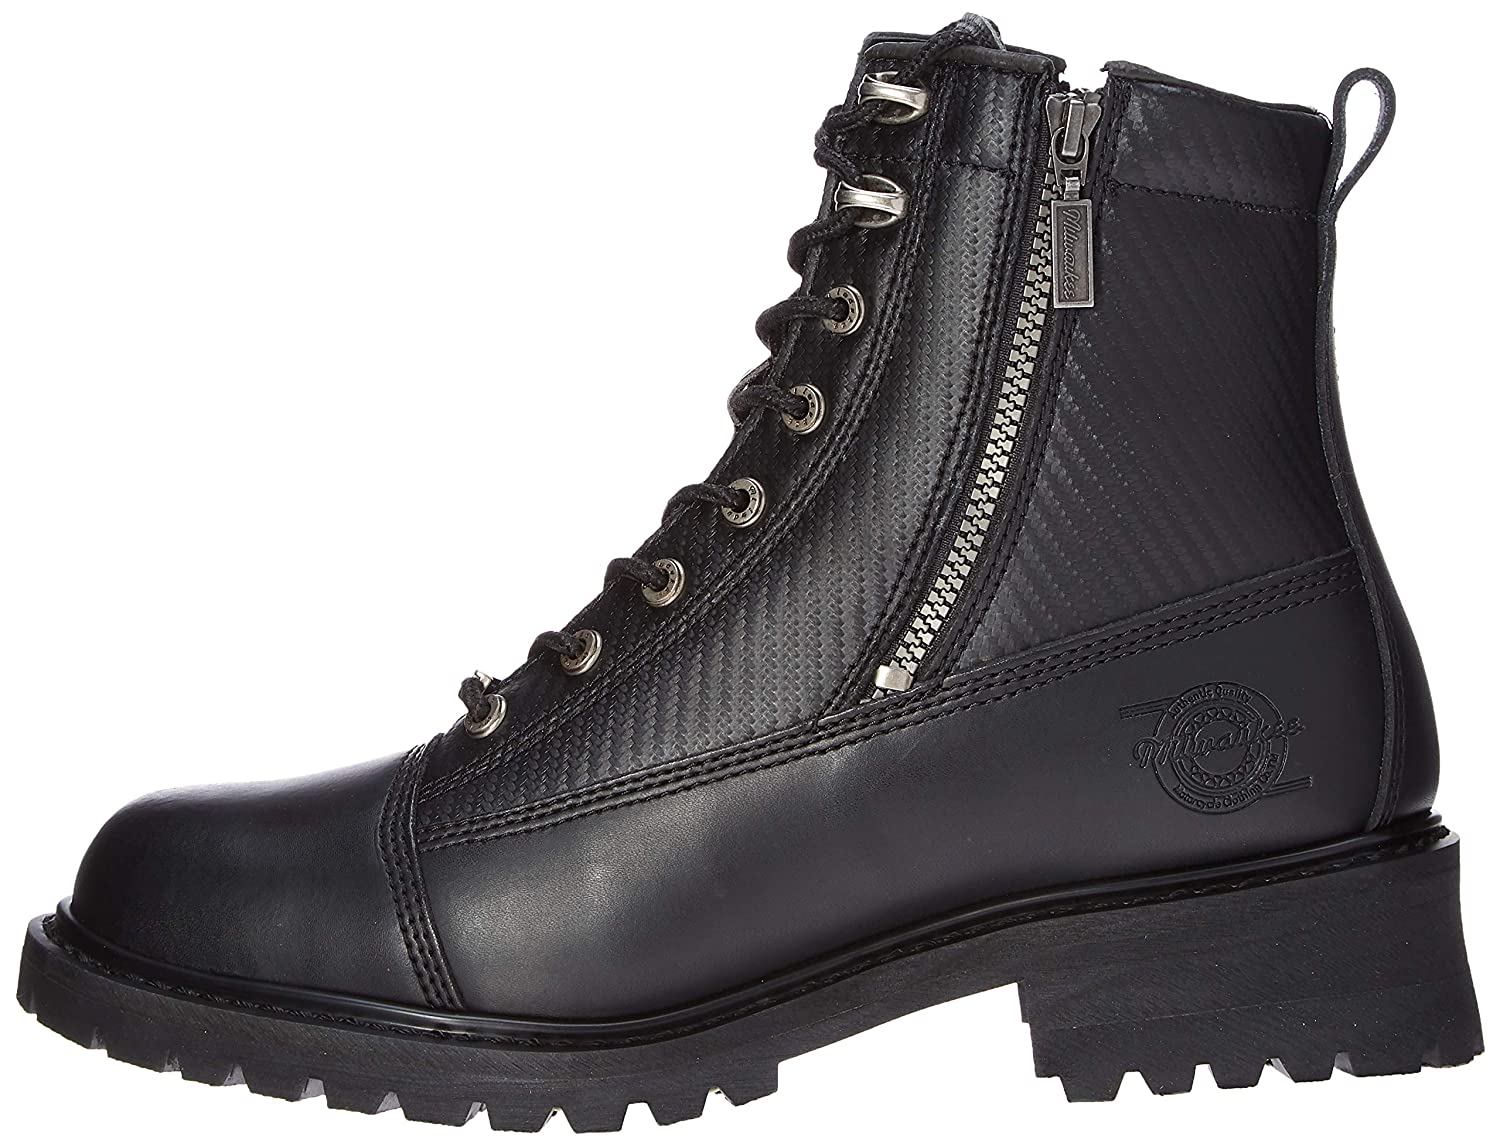 Black, Size 8EE Milwaukee Motorcycle Clothing Company Accelerator Leather Mens Motorcycle Boots